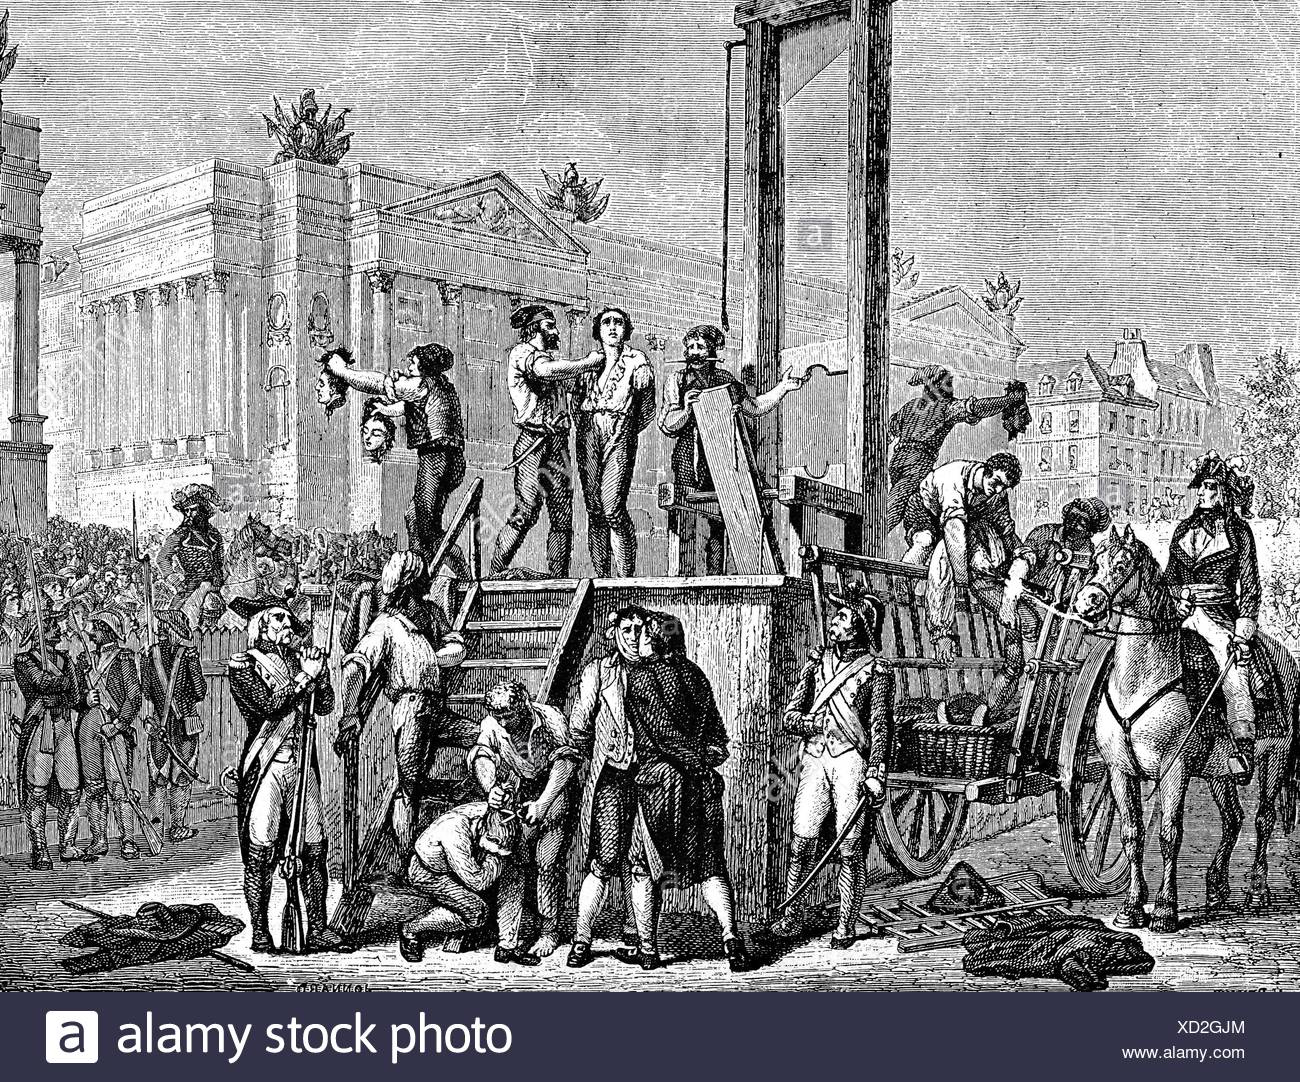 Robespierre, Maximilien de, 6.5.1758 - 28.7.1794, French politician, his  execution with the Guillontine, Place de la Revolution, 28.7.1794, wood  engraving ...